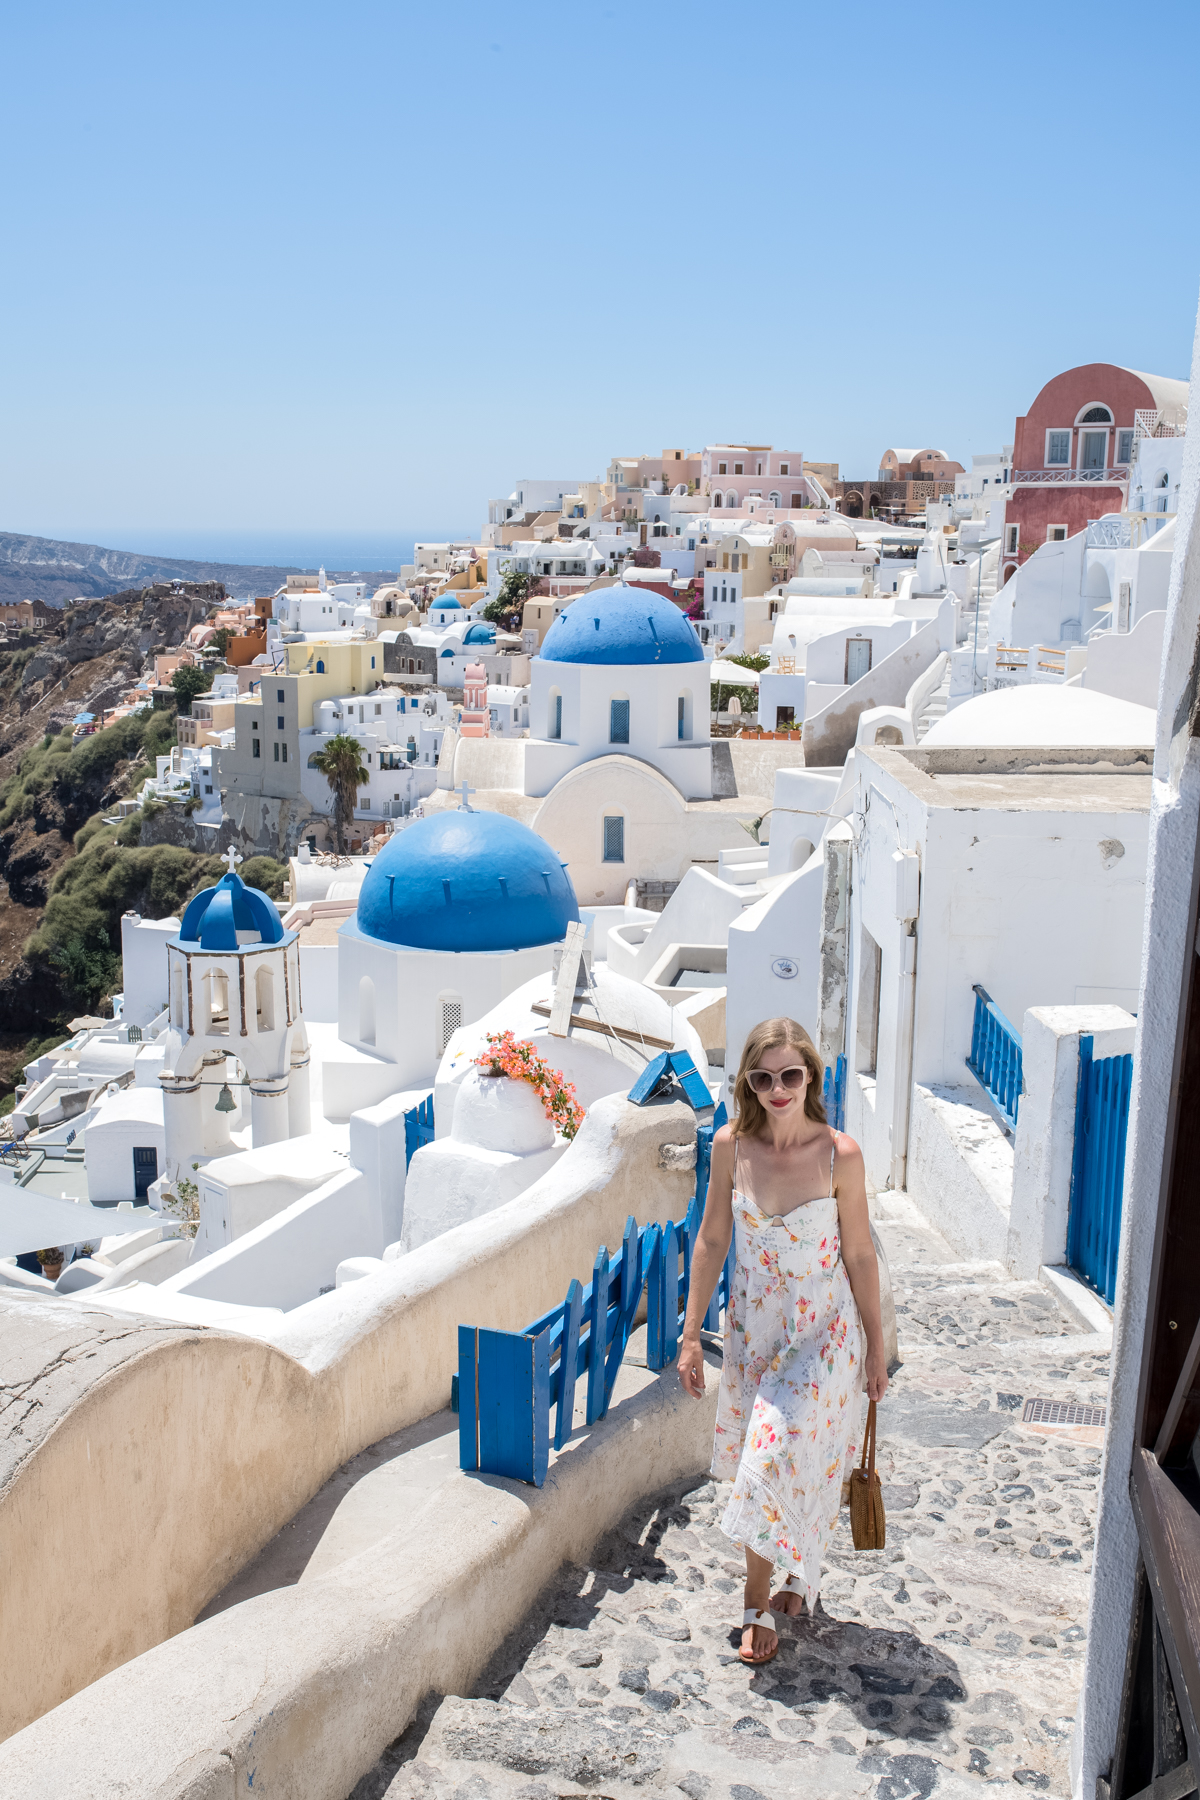 Stacie Flinner Travel Guide Santorini Greece-23.jpg